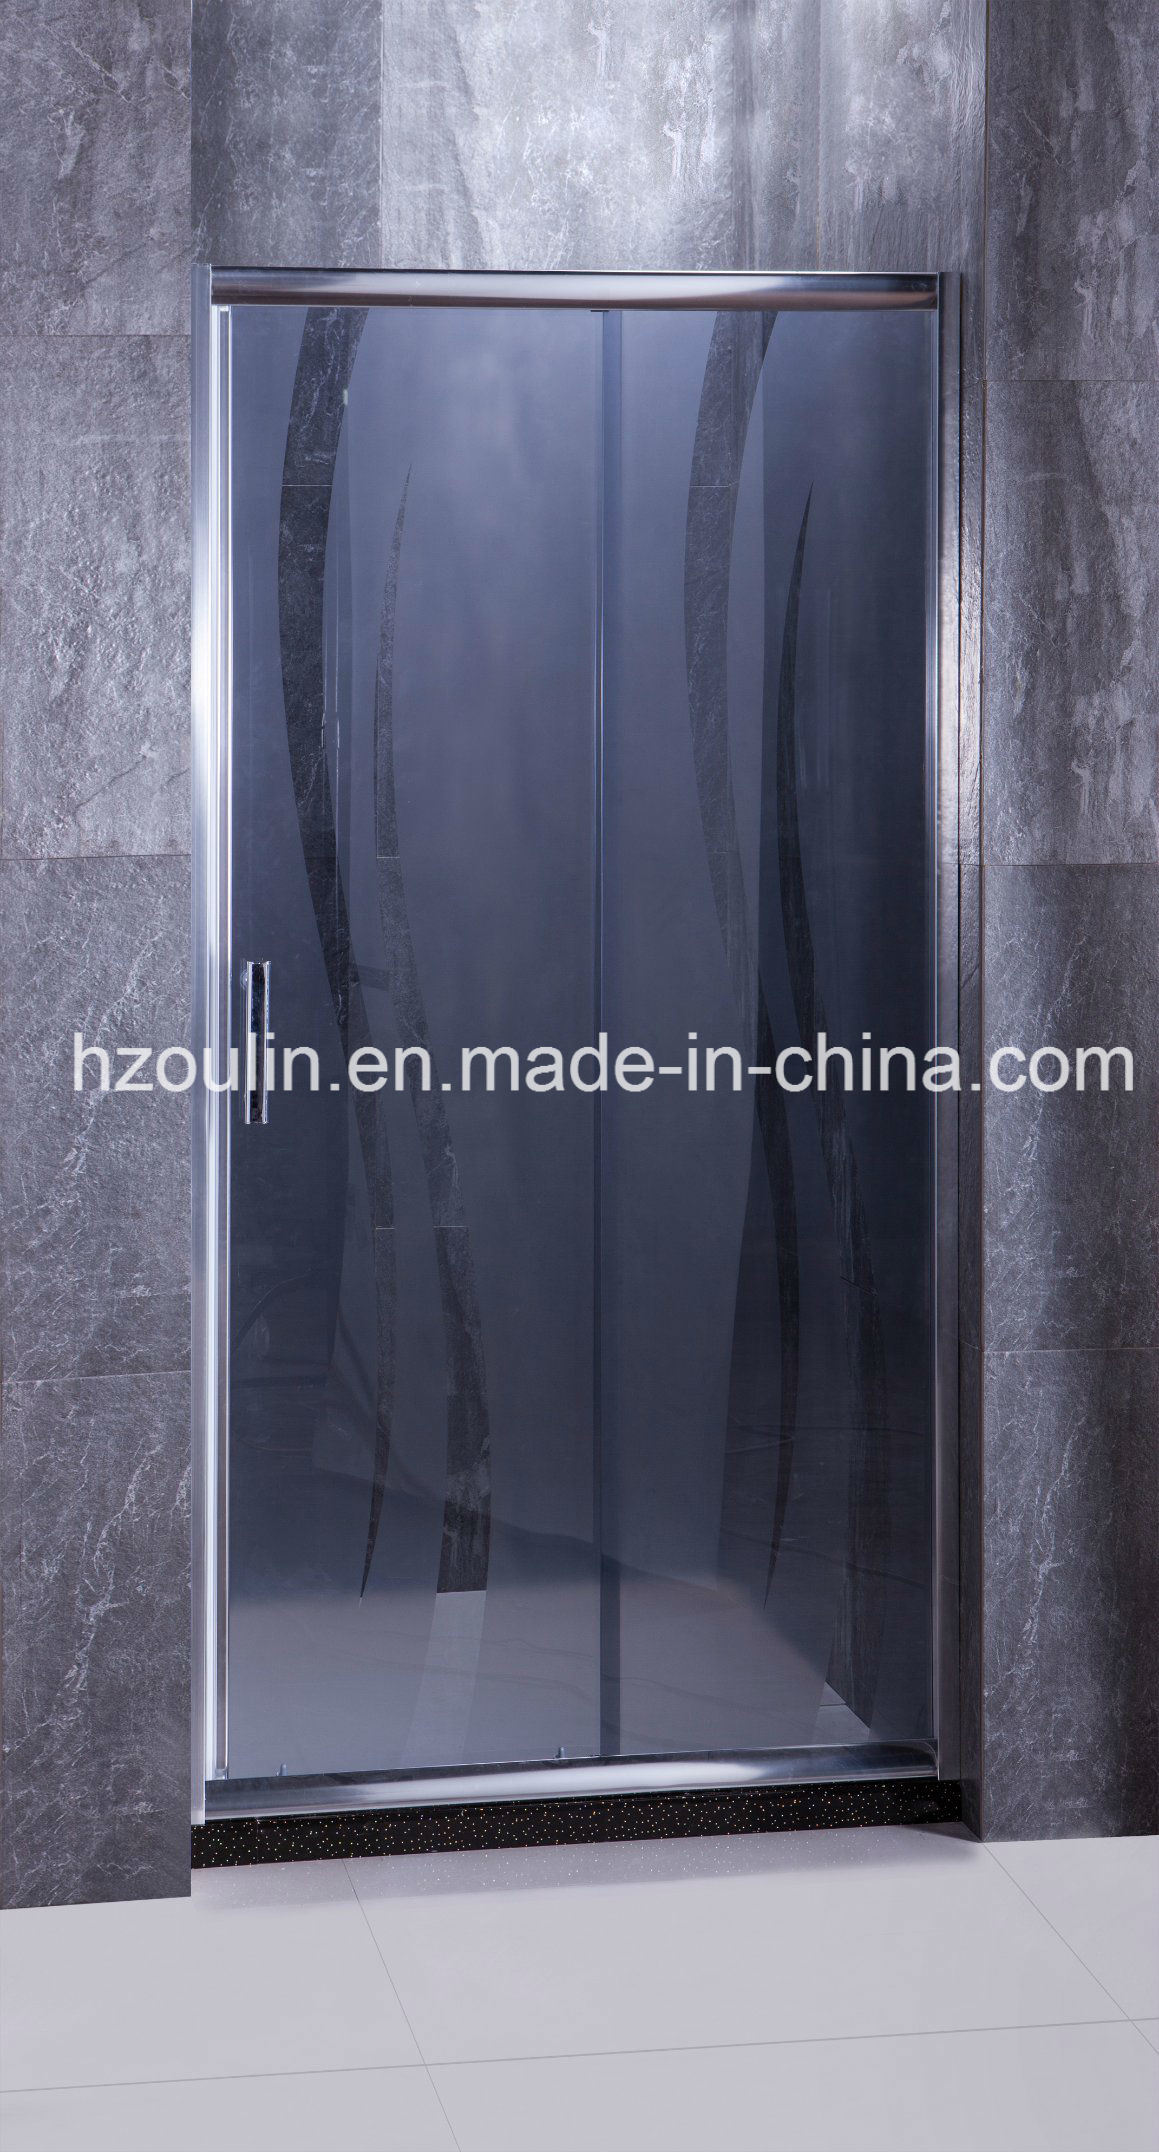 China Grey Glass Shower Door with Acid Design - China Shower Door ...